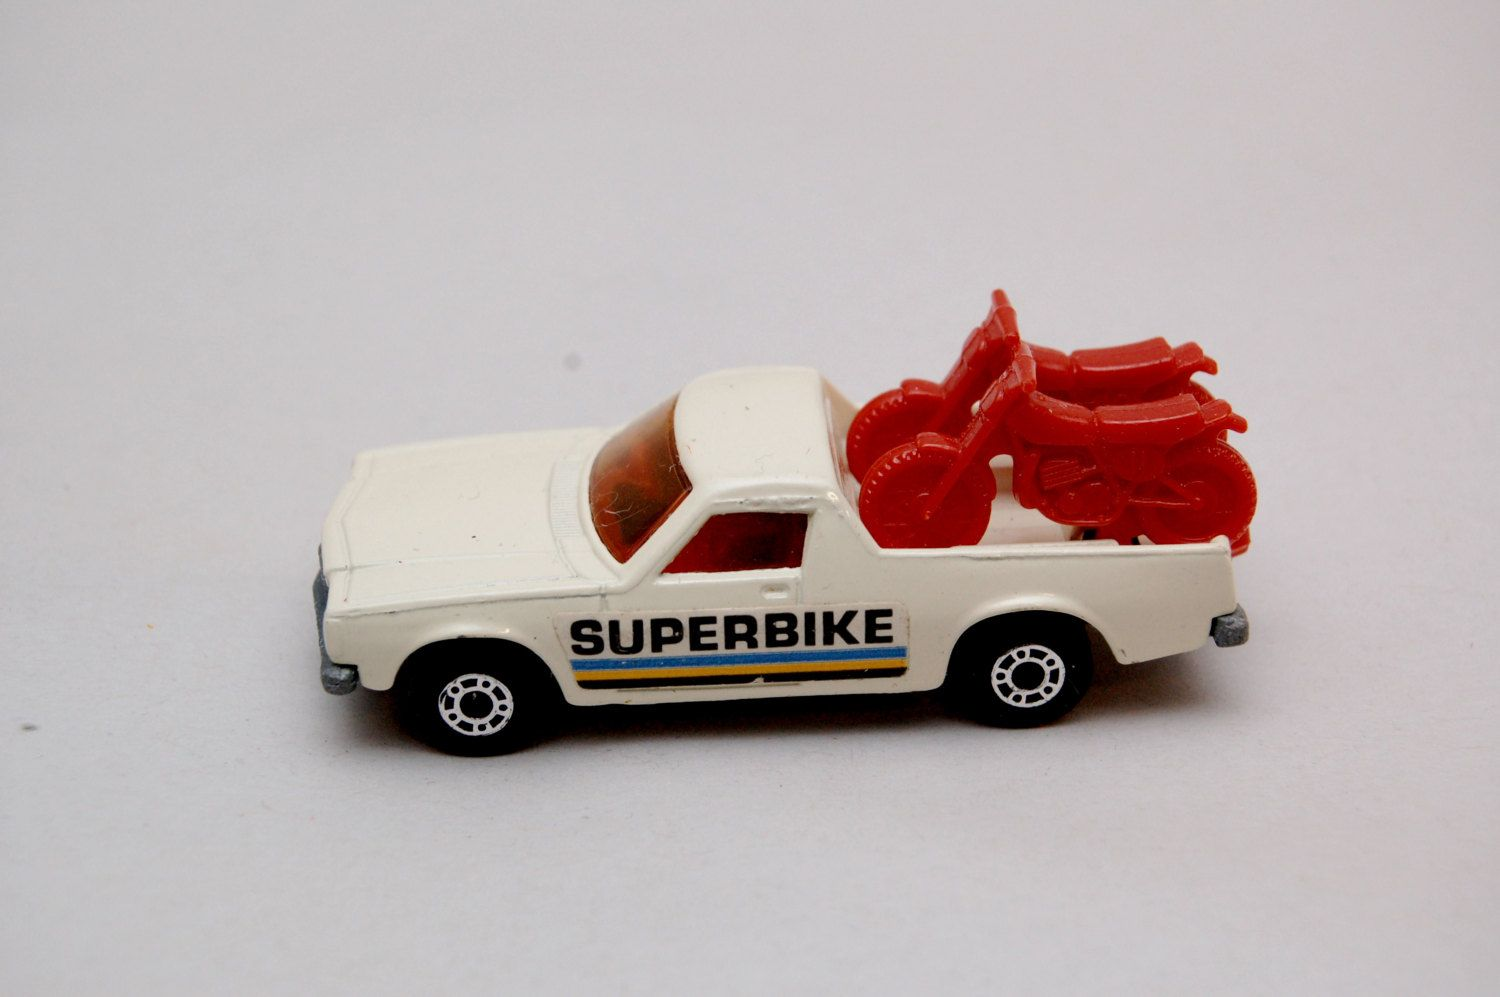 Matchbox Superfast 60 Holden Pickup Truck Superbike Logo Red Motorcycles Lesney Products Made In England Die Cast Toy Car Colle Toy Car Toys Matchbox Cars [ 997 x 1500 Pixel ]